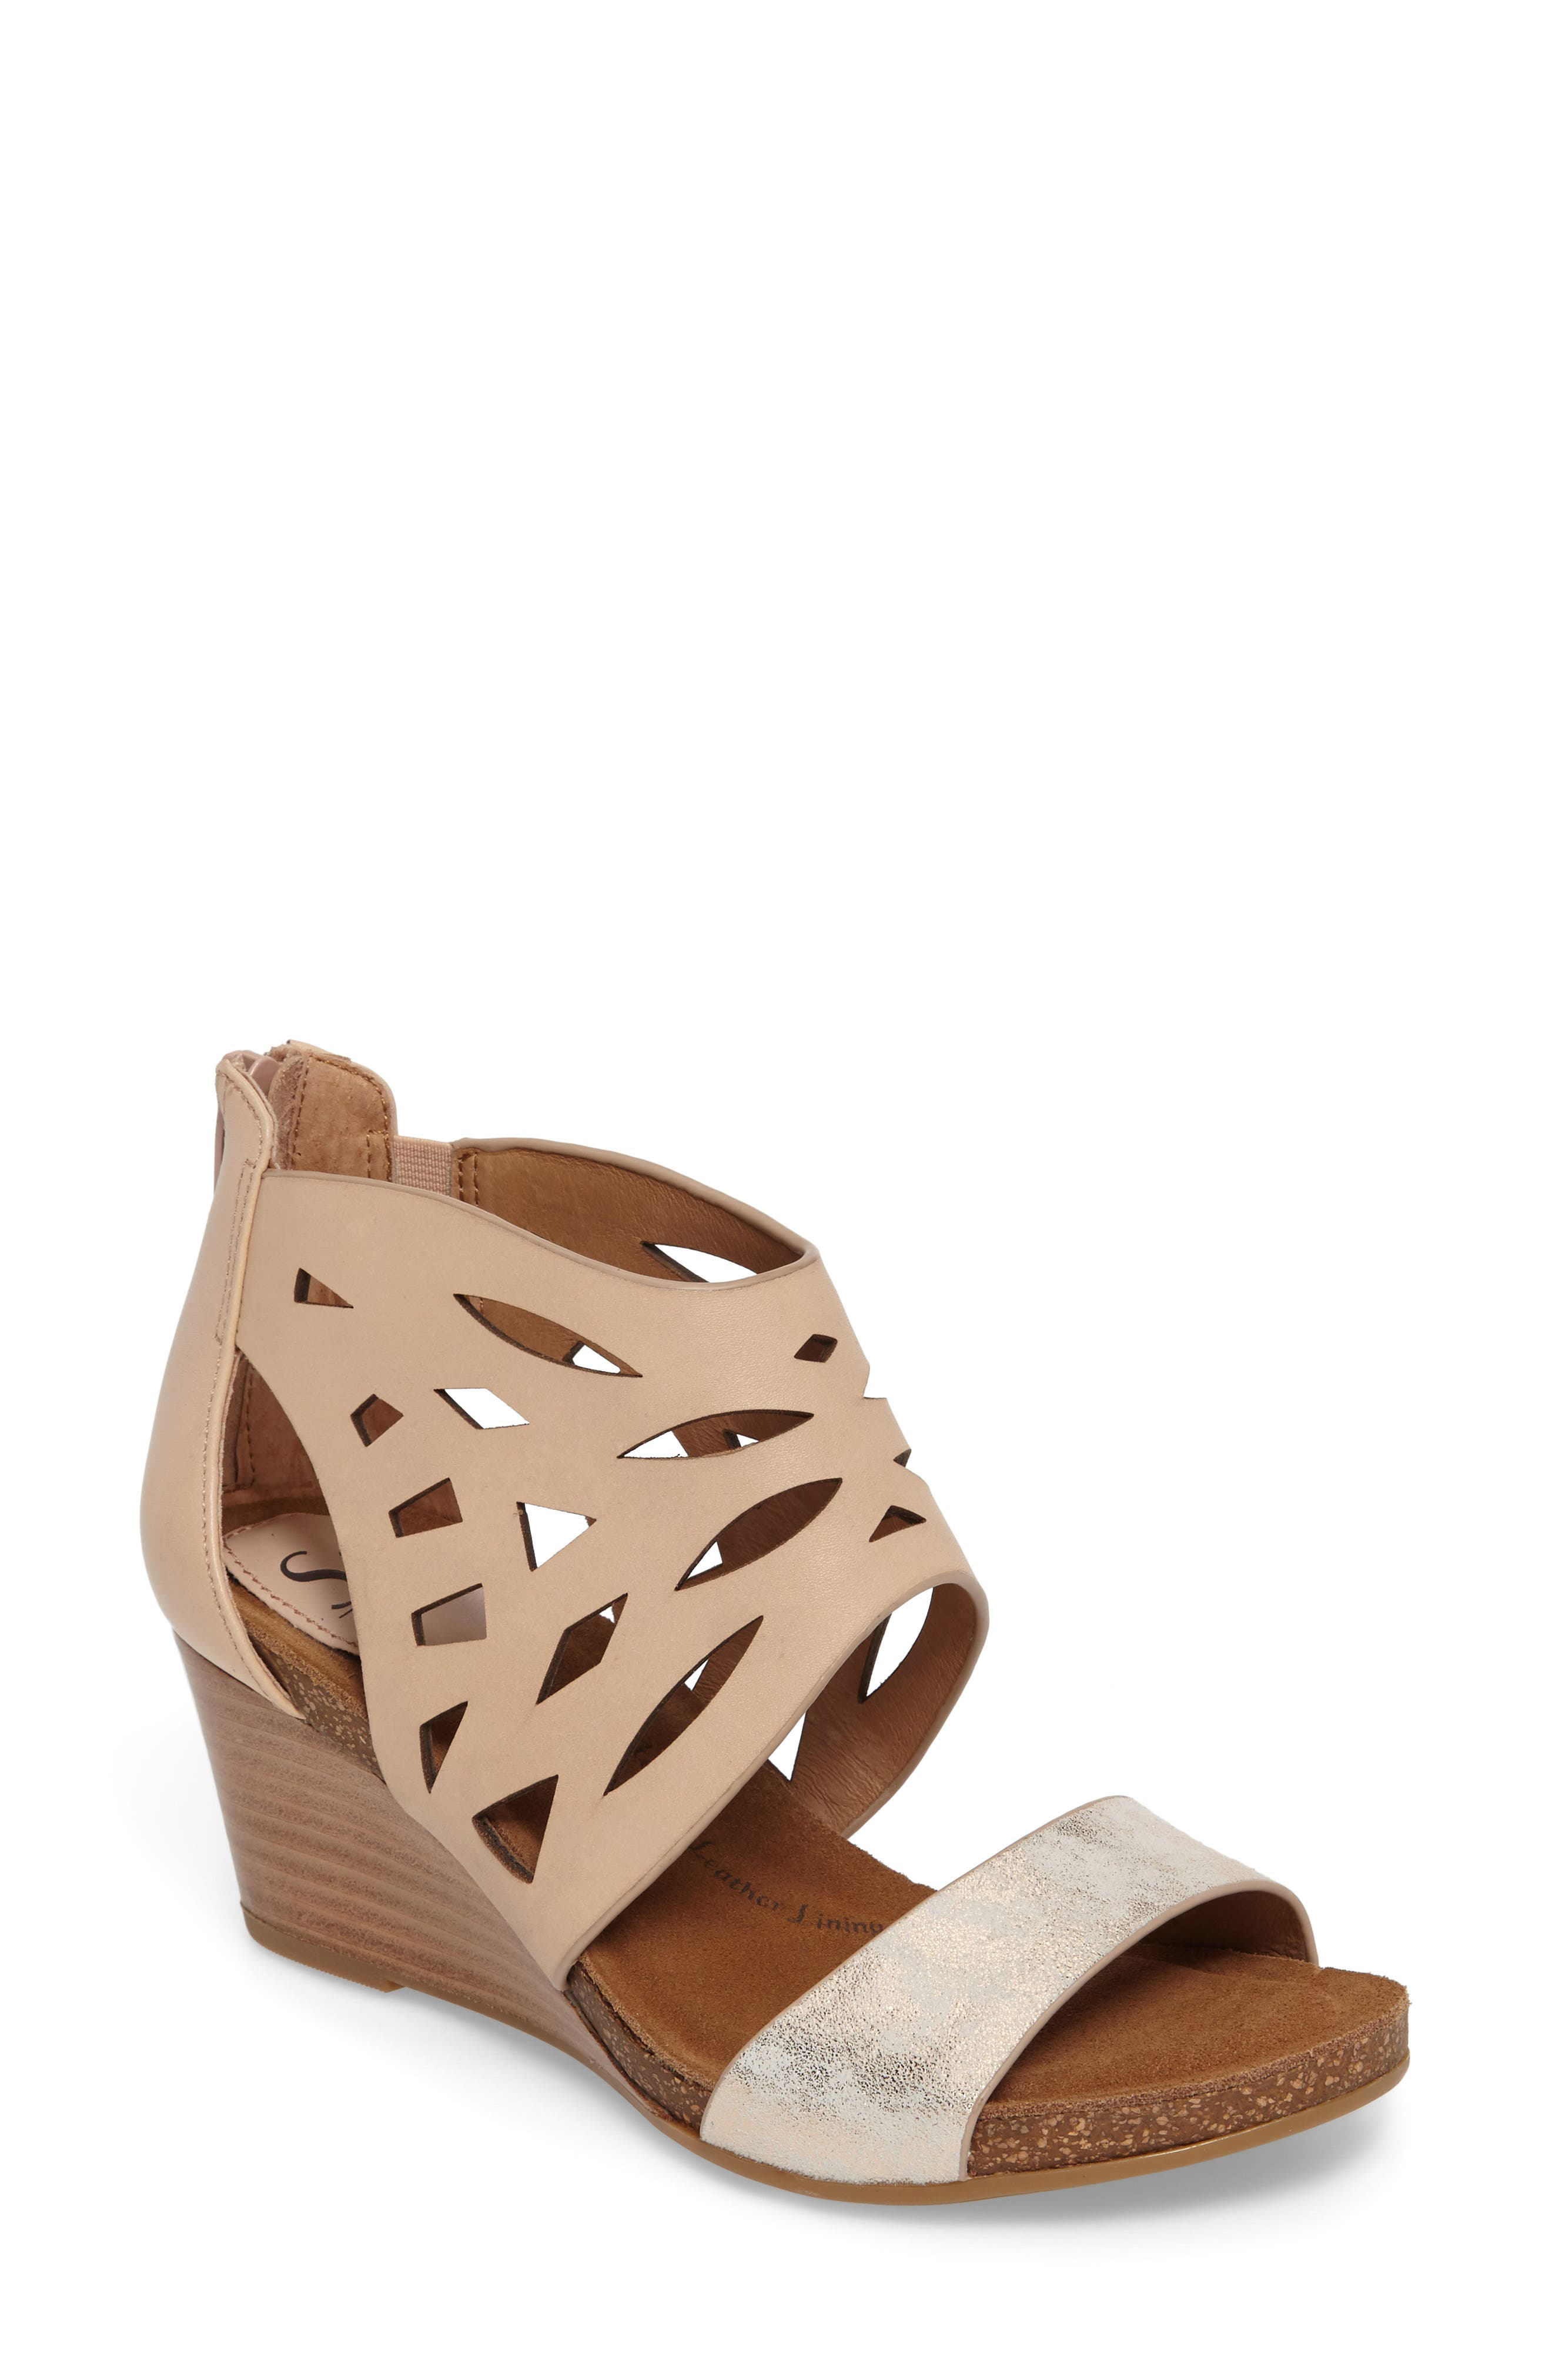 Mystic Perforated Wedge Sandal,                             Main thumbnail 1, color,                             Blush/ Ivory Leather